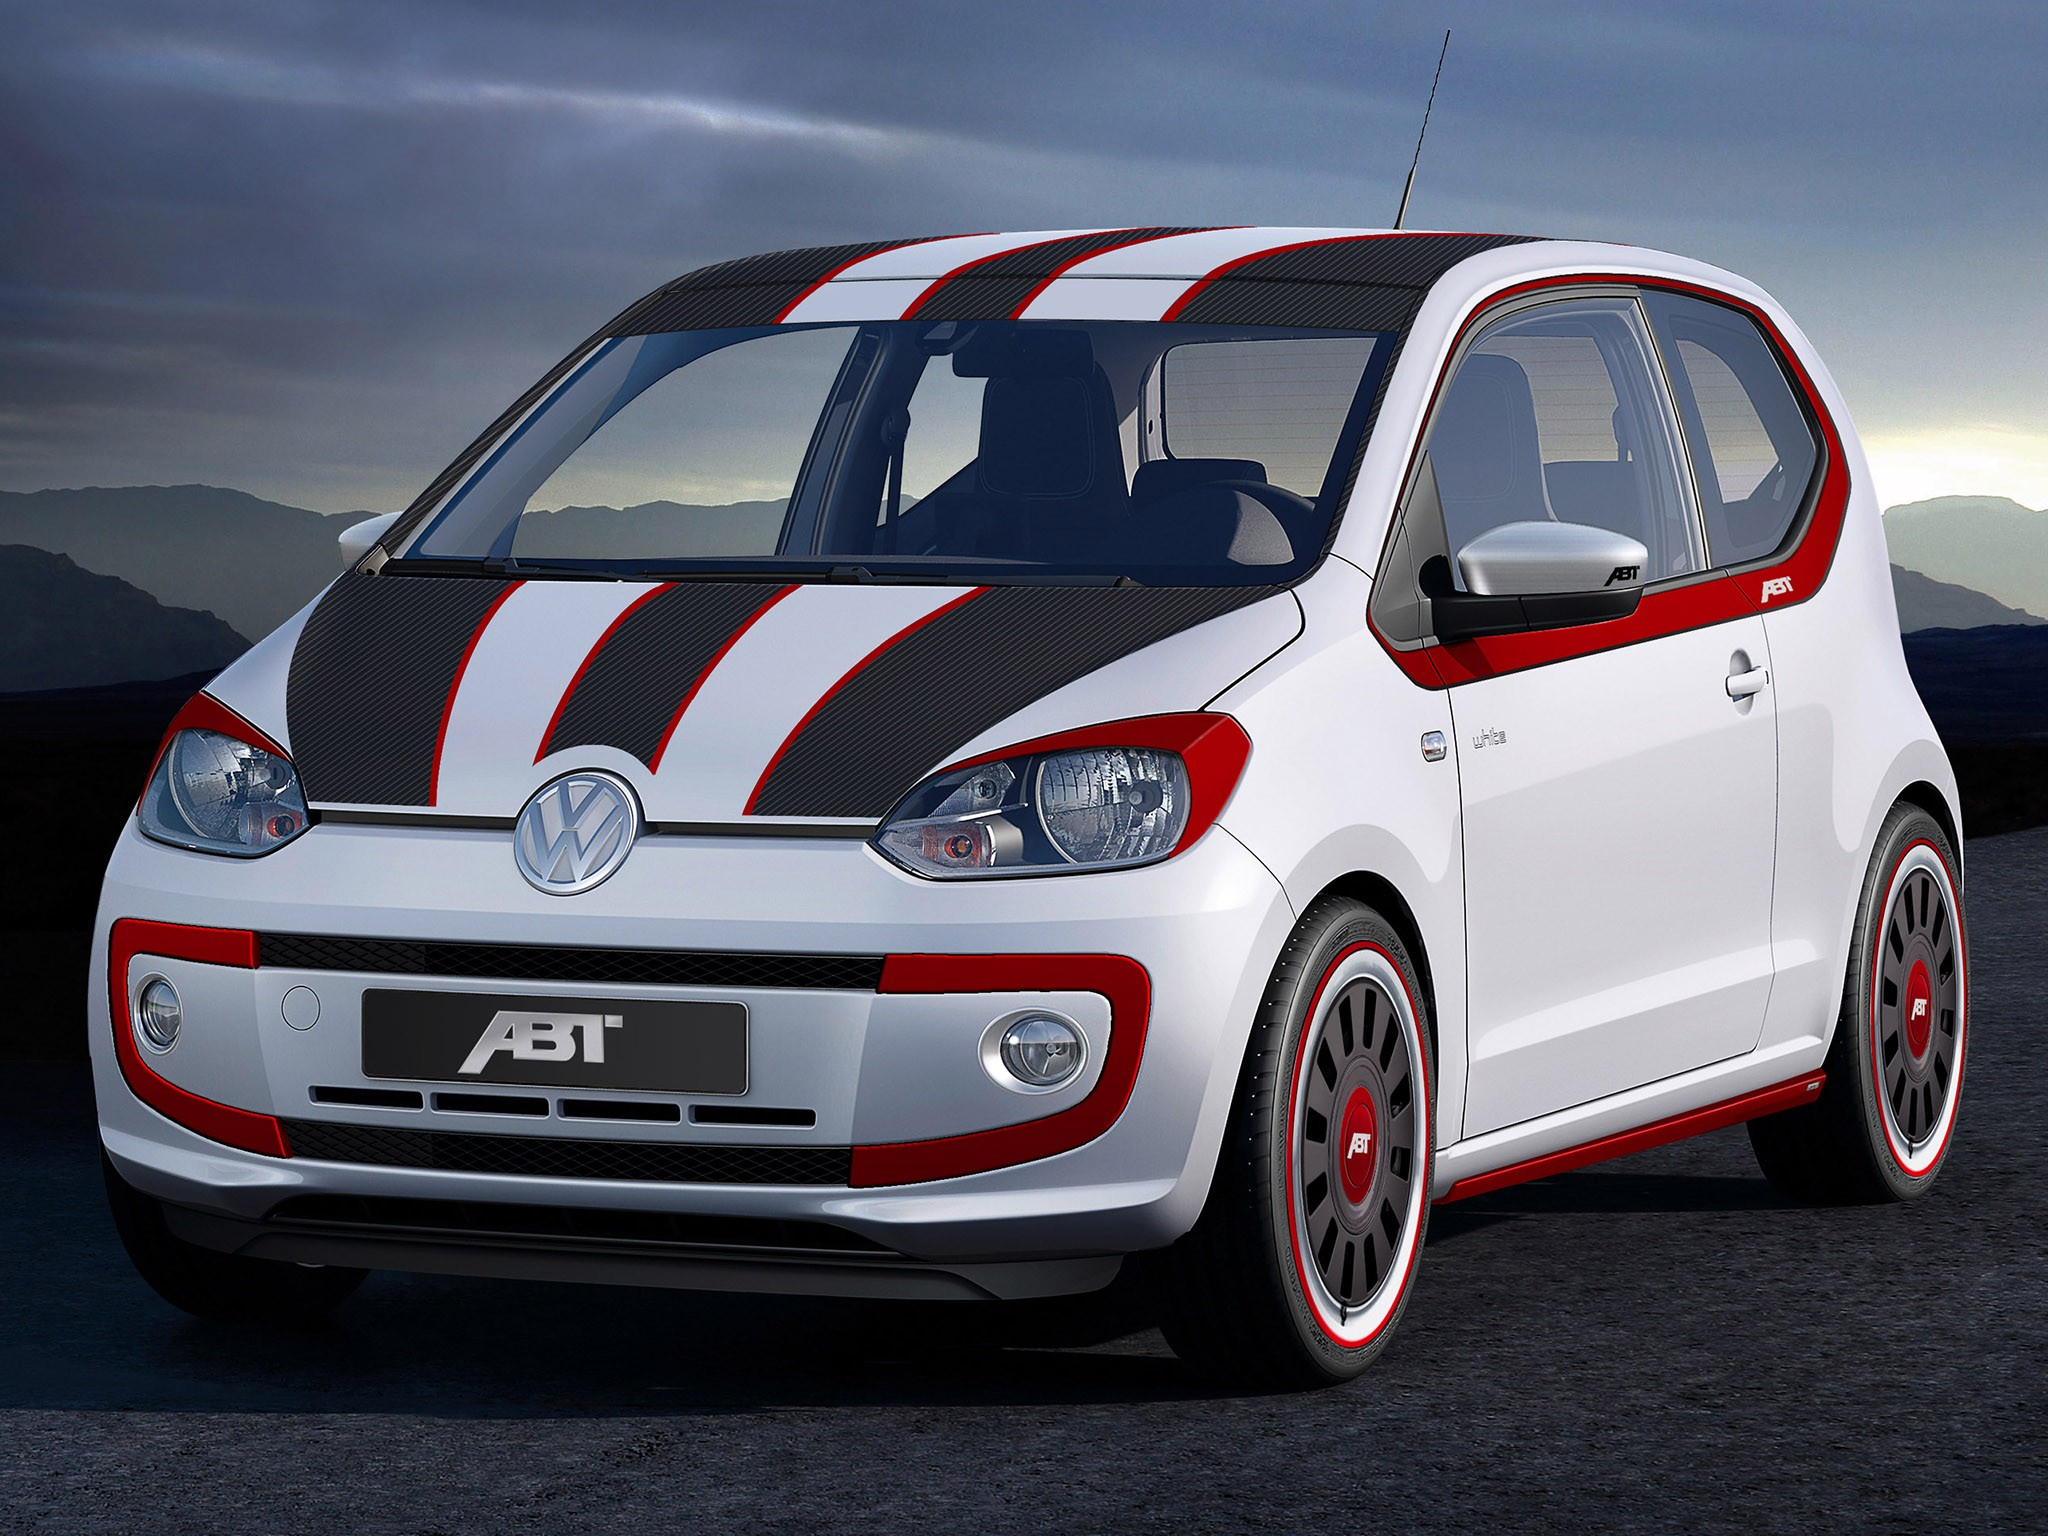 Volkswagen UP 3 Portes (2012) - ABT